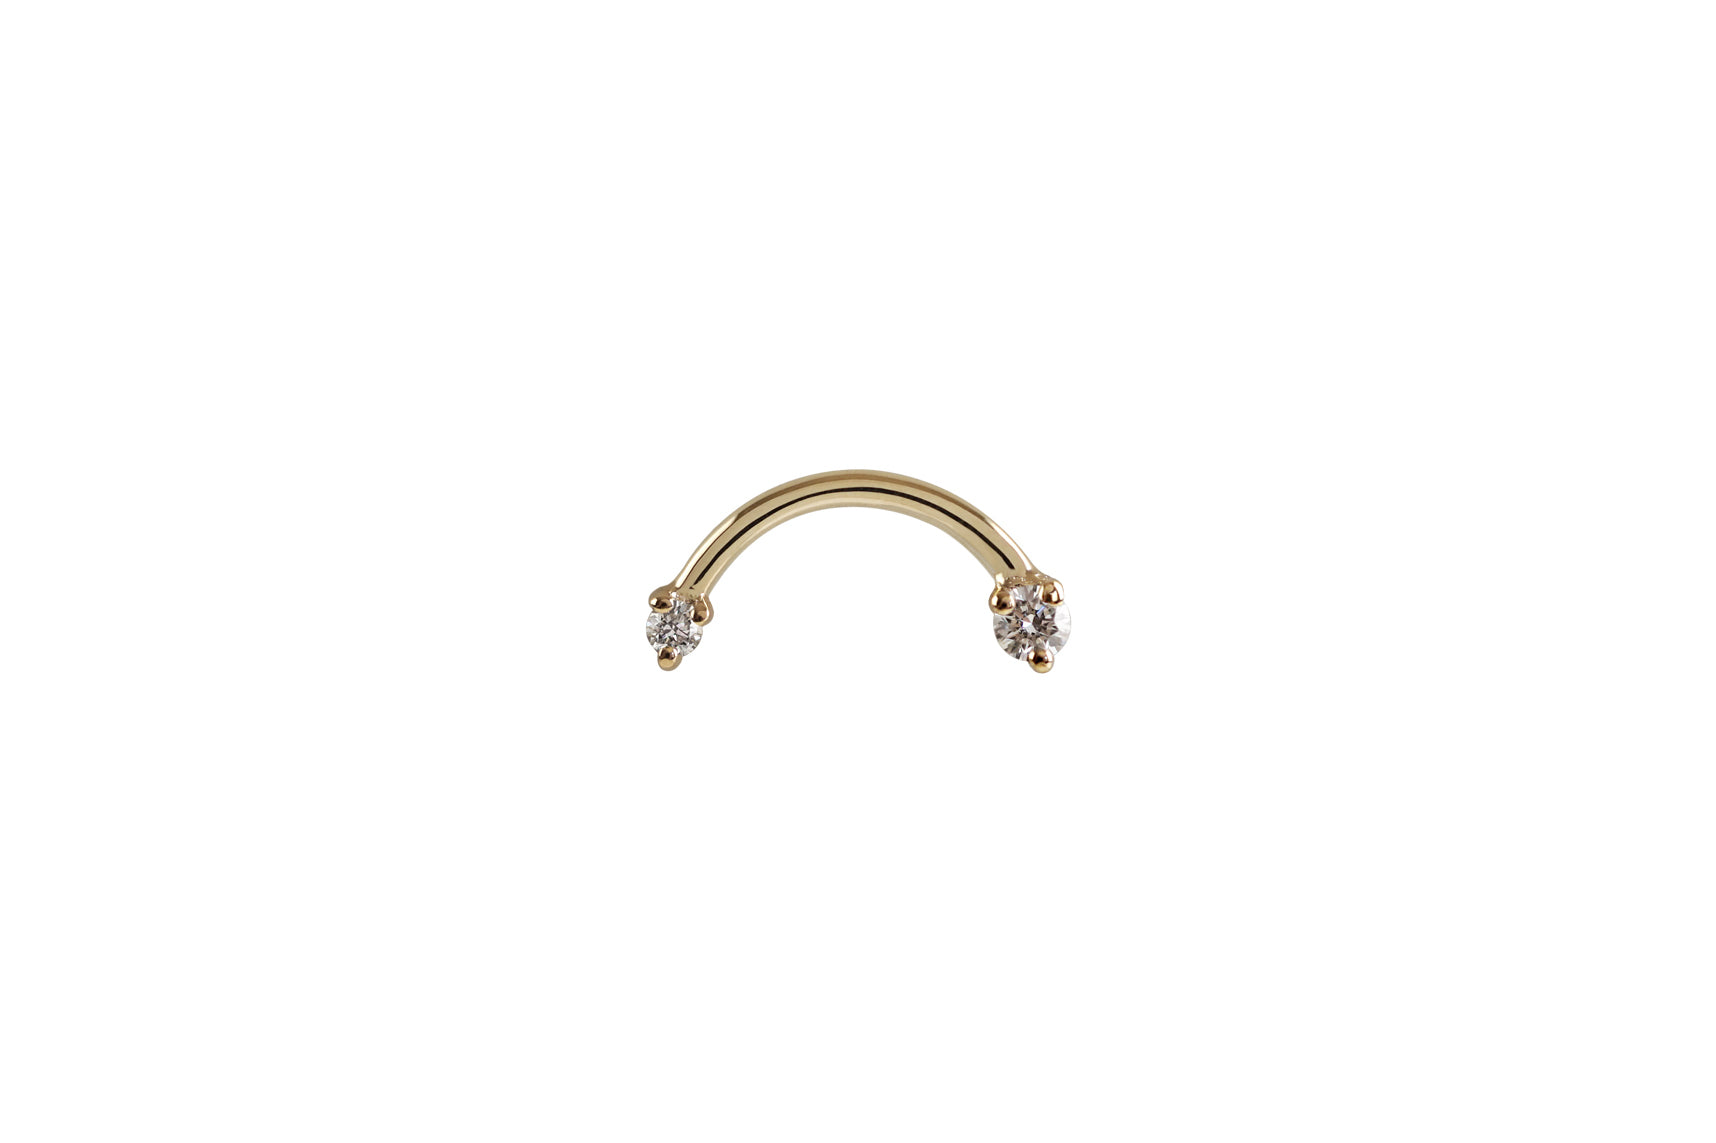 14k Gold Arc Double Diamond Earrings